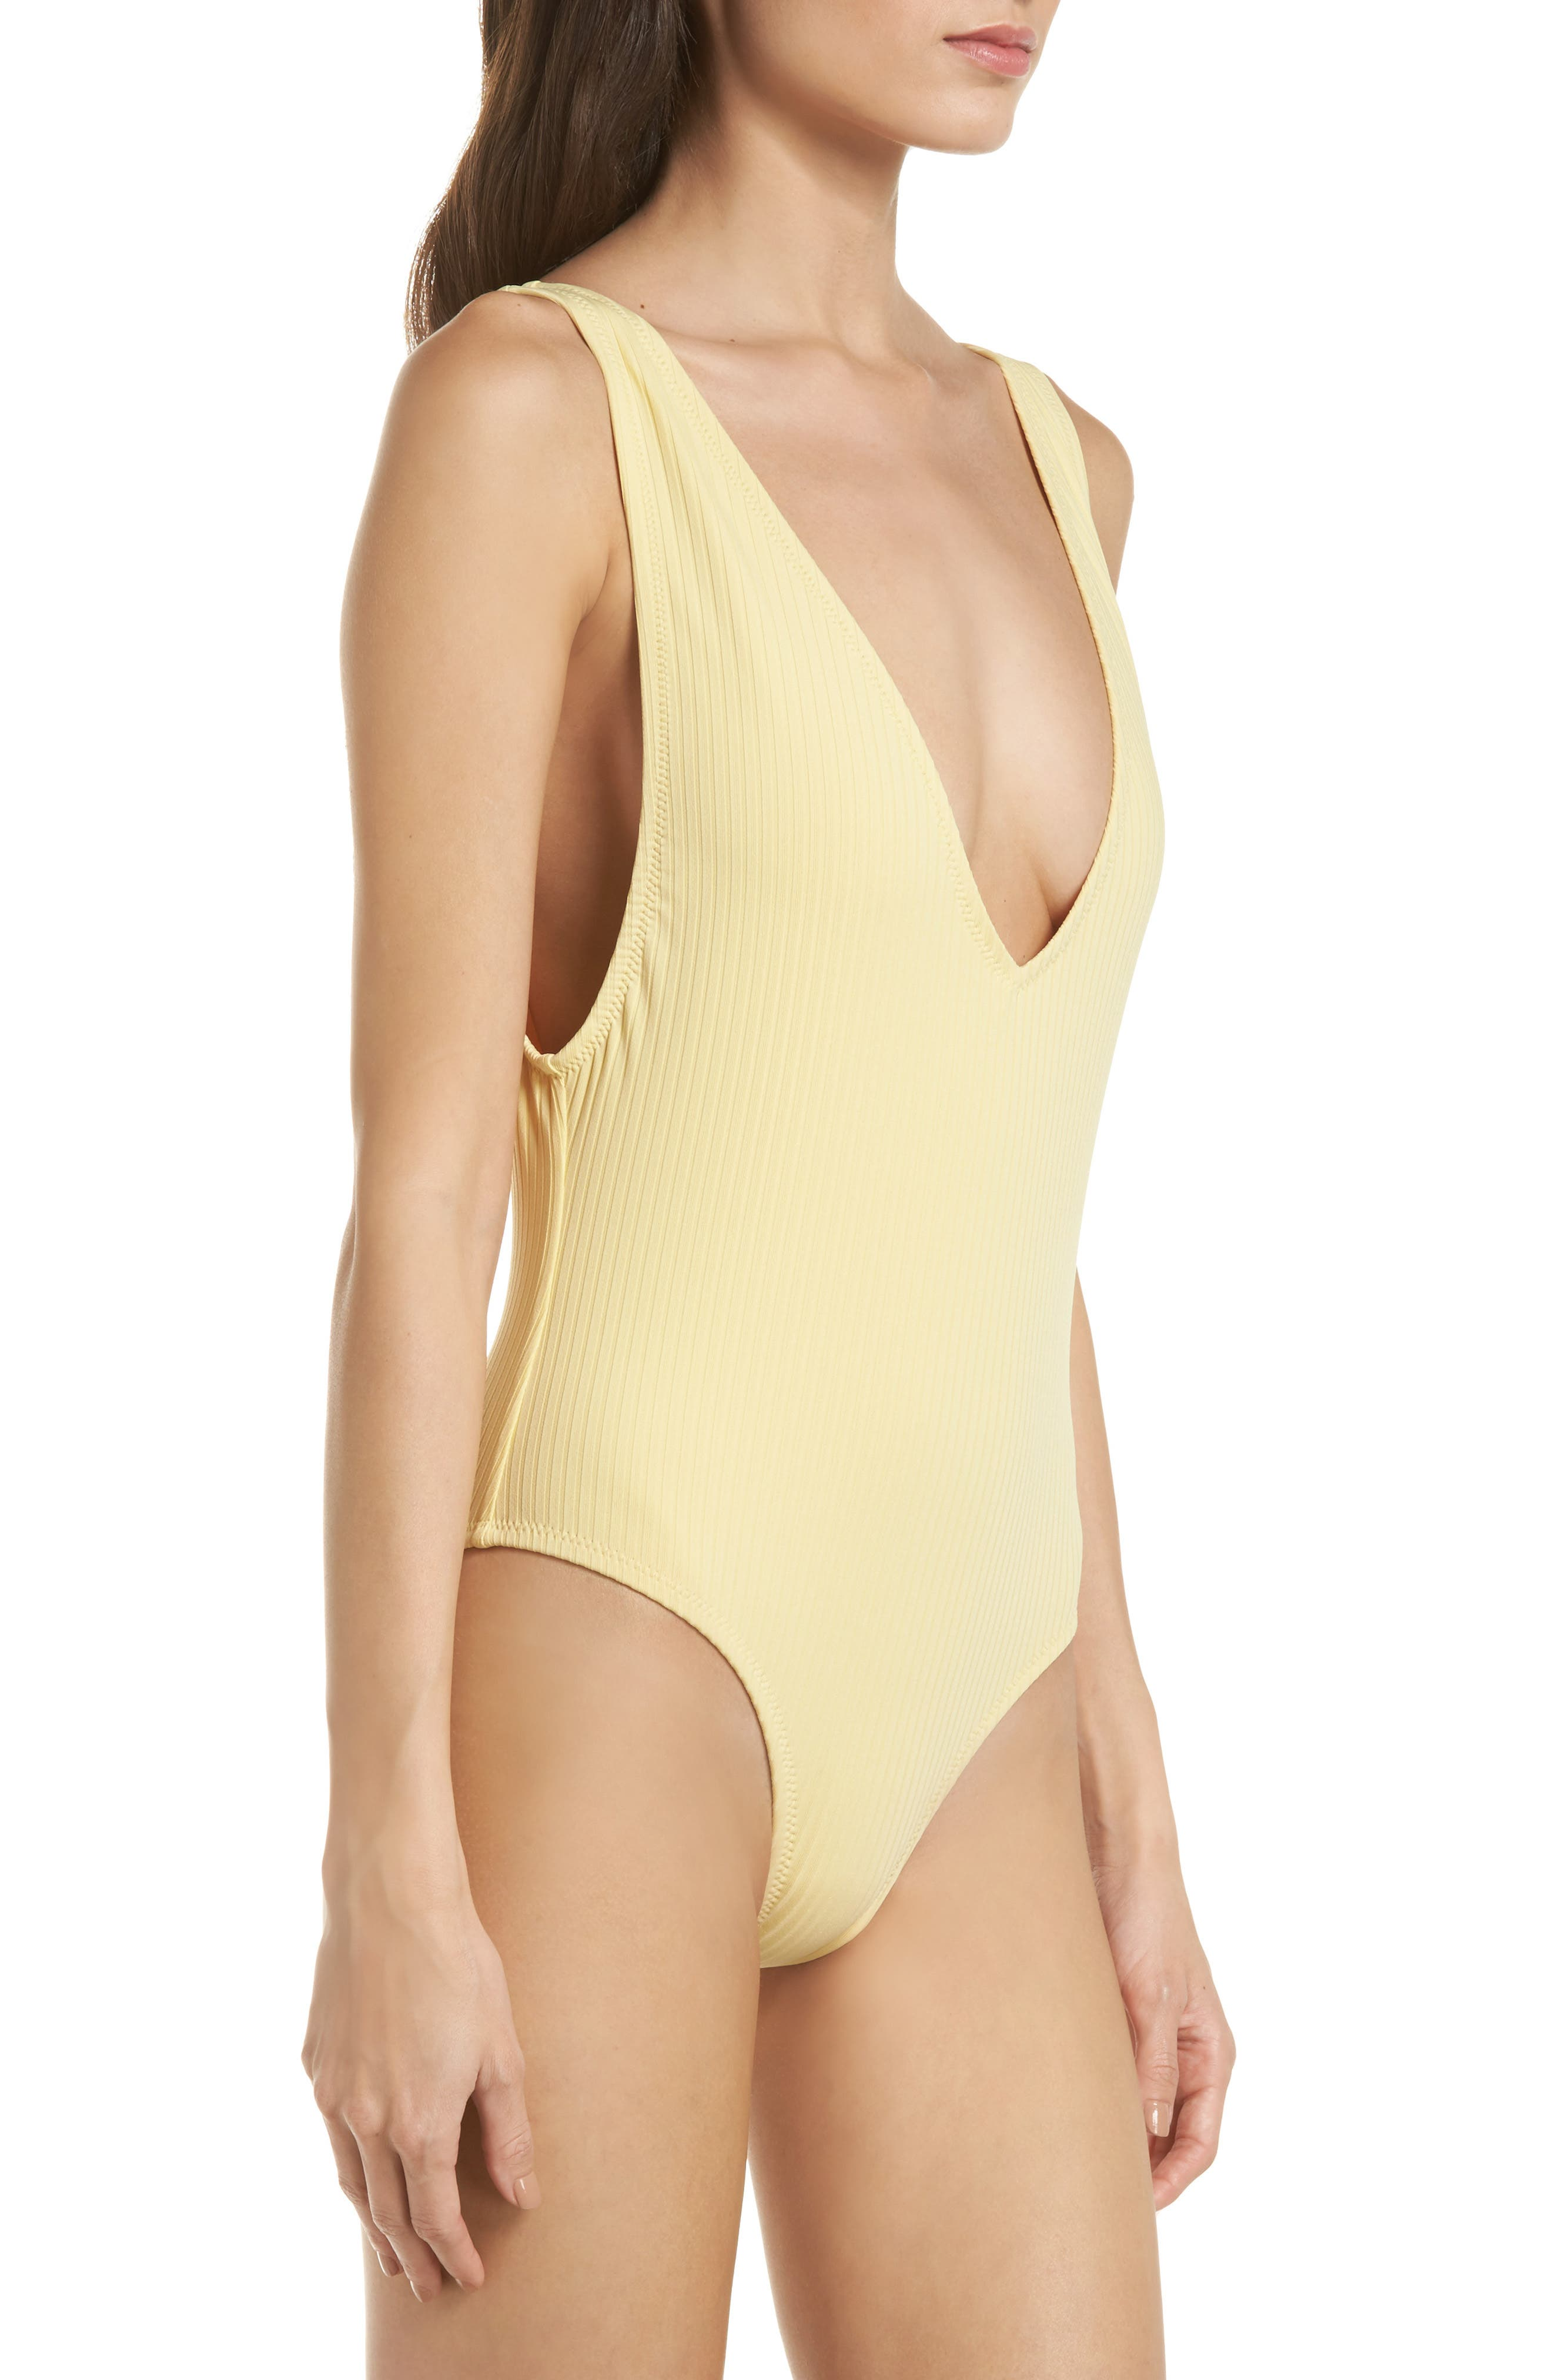 Vermont One-Piece Swimsuit,                             Alternate thumbnail 3, color,                             Soft Yellow